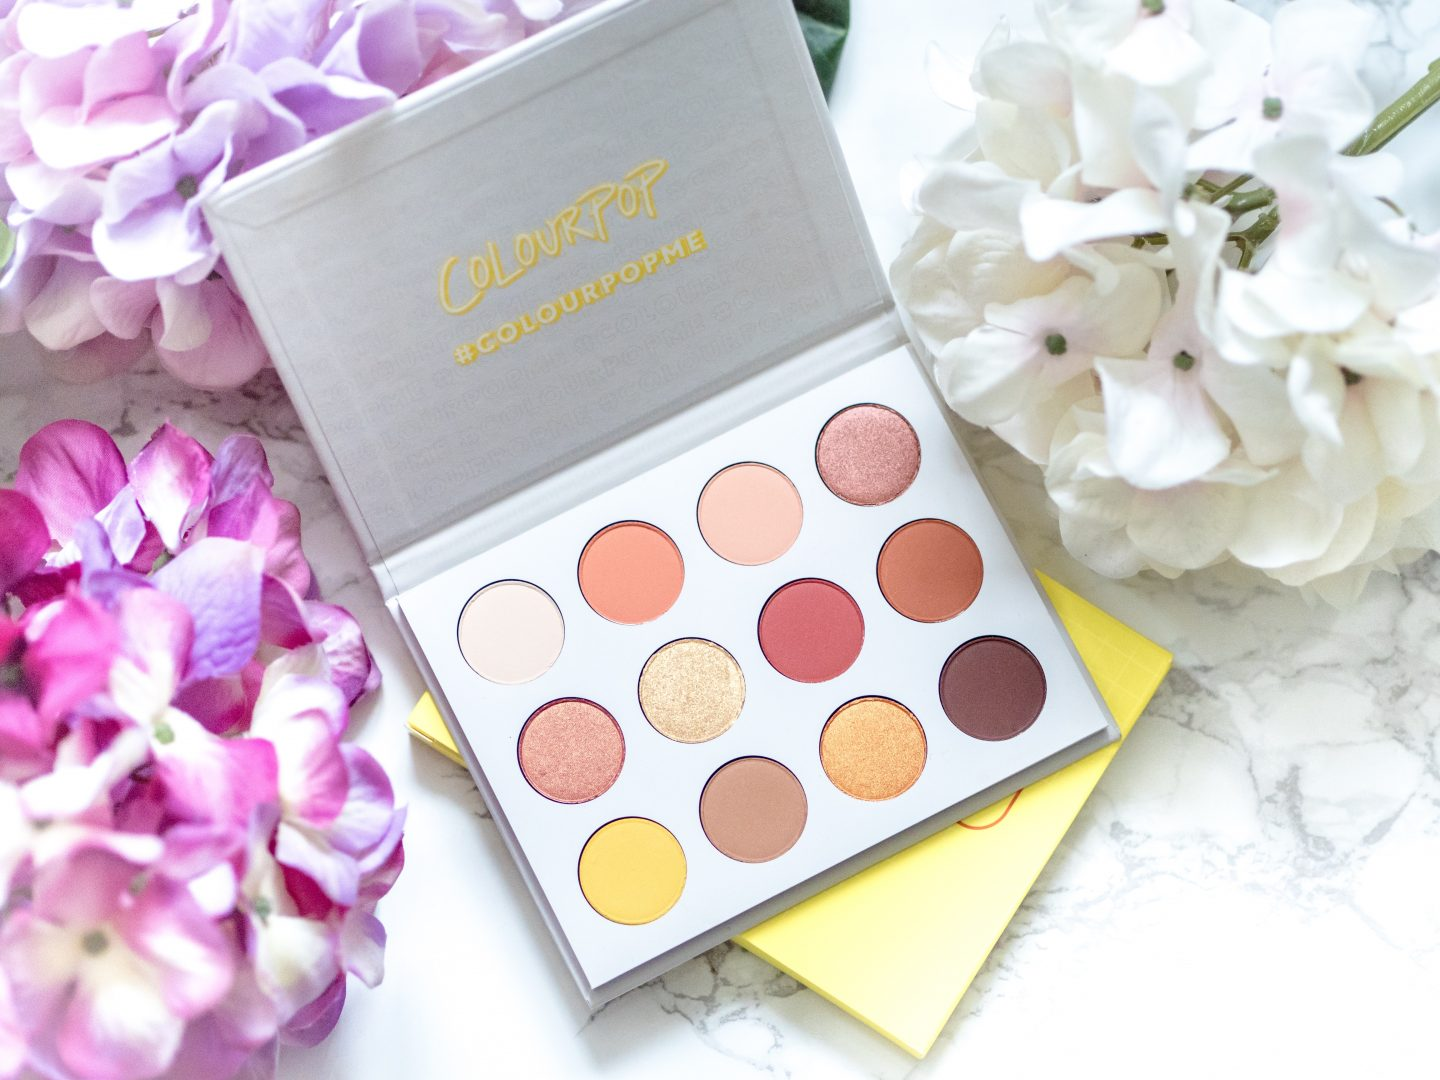 Colourpop yes please Palette giveaway